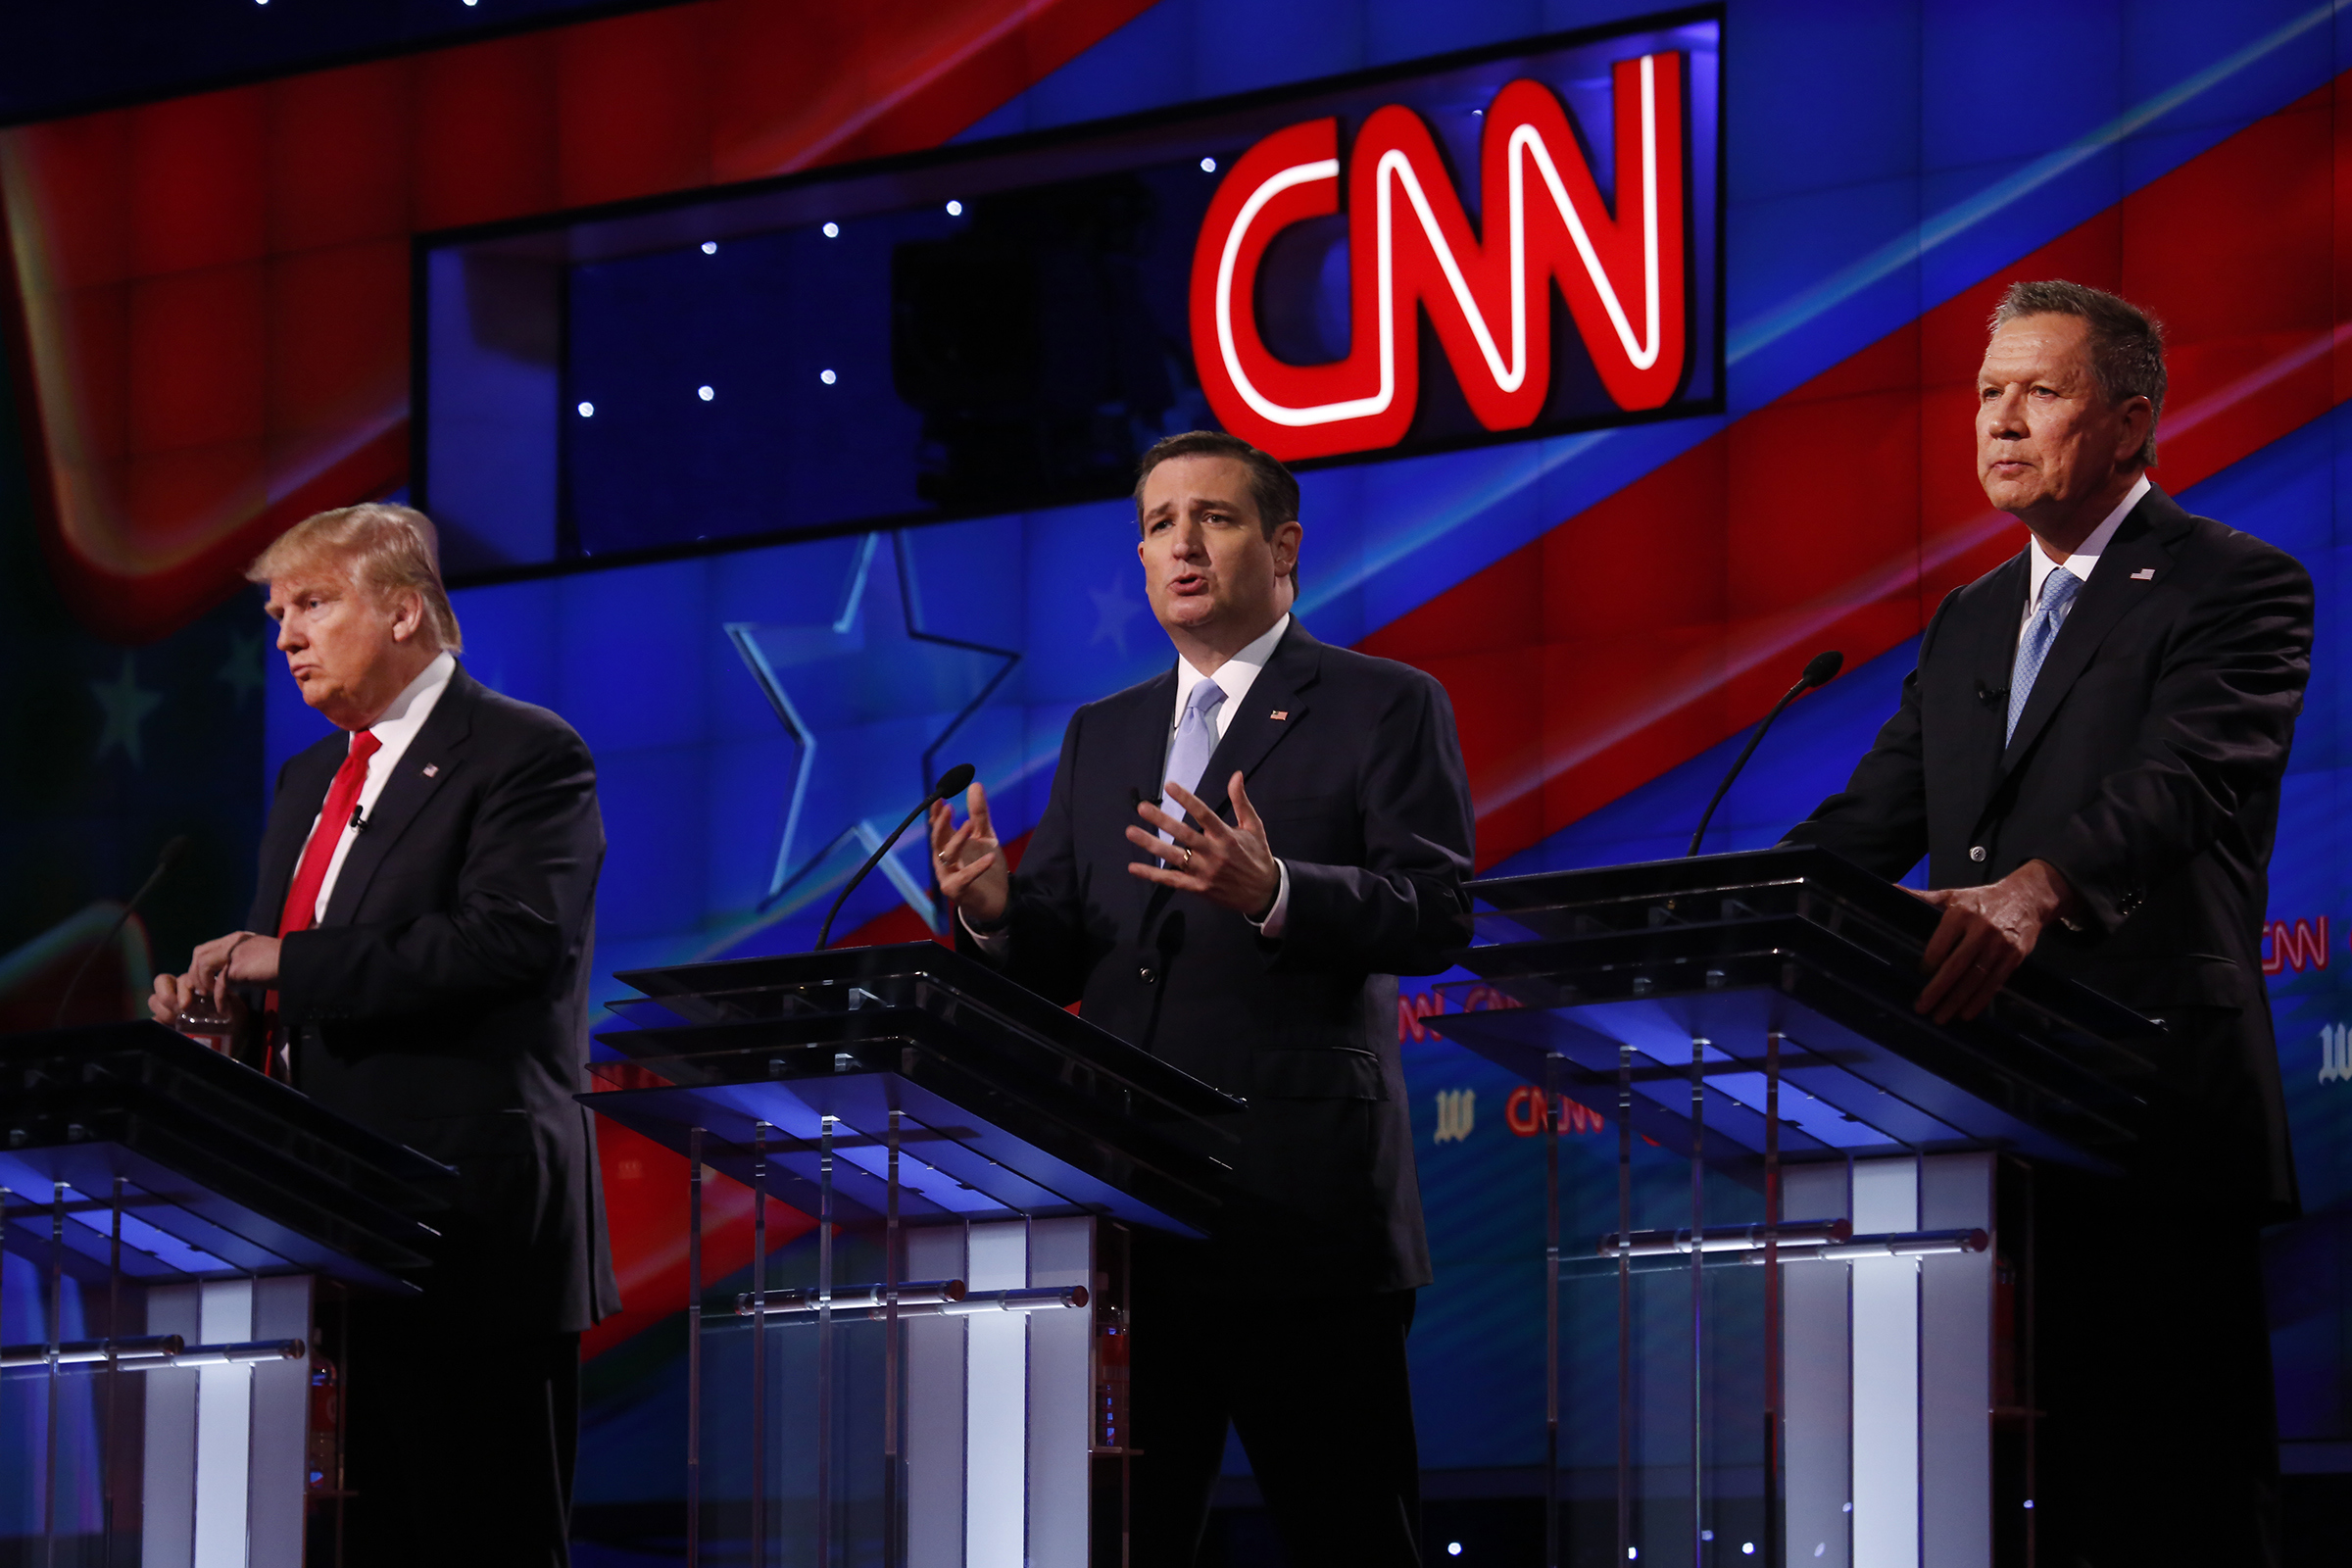 Donald Trump, Ted Cruz, and John Kasich take part in a debate at the University of Miami on March 10, 2016, hosted by CNN and the Washington Times.